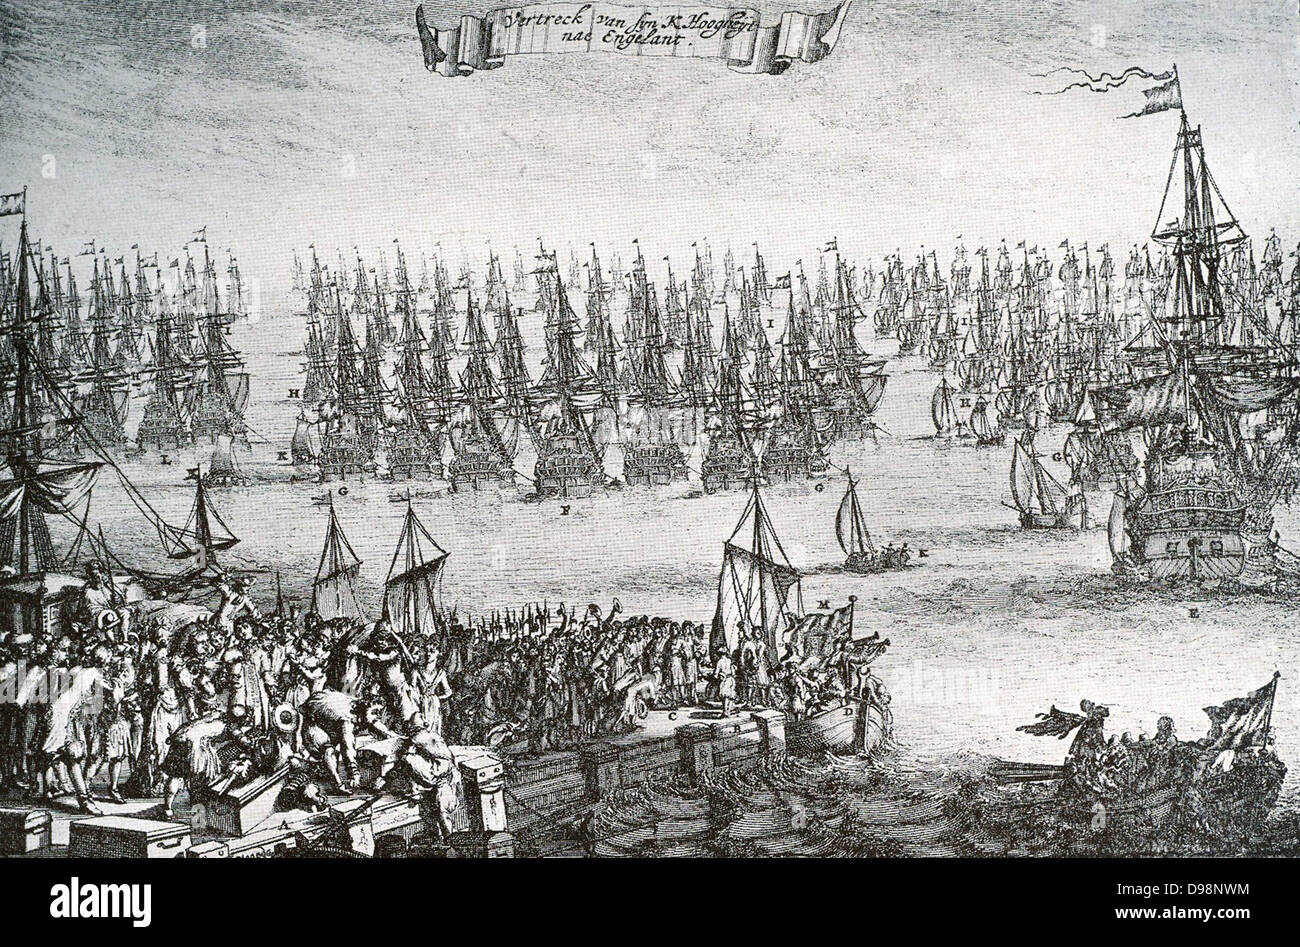 William III landed at Torbay on 5 November 1688 in 463 ships, unopposed by the Royal Navy and with an army of 14,000 - Stock Image